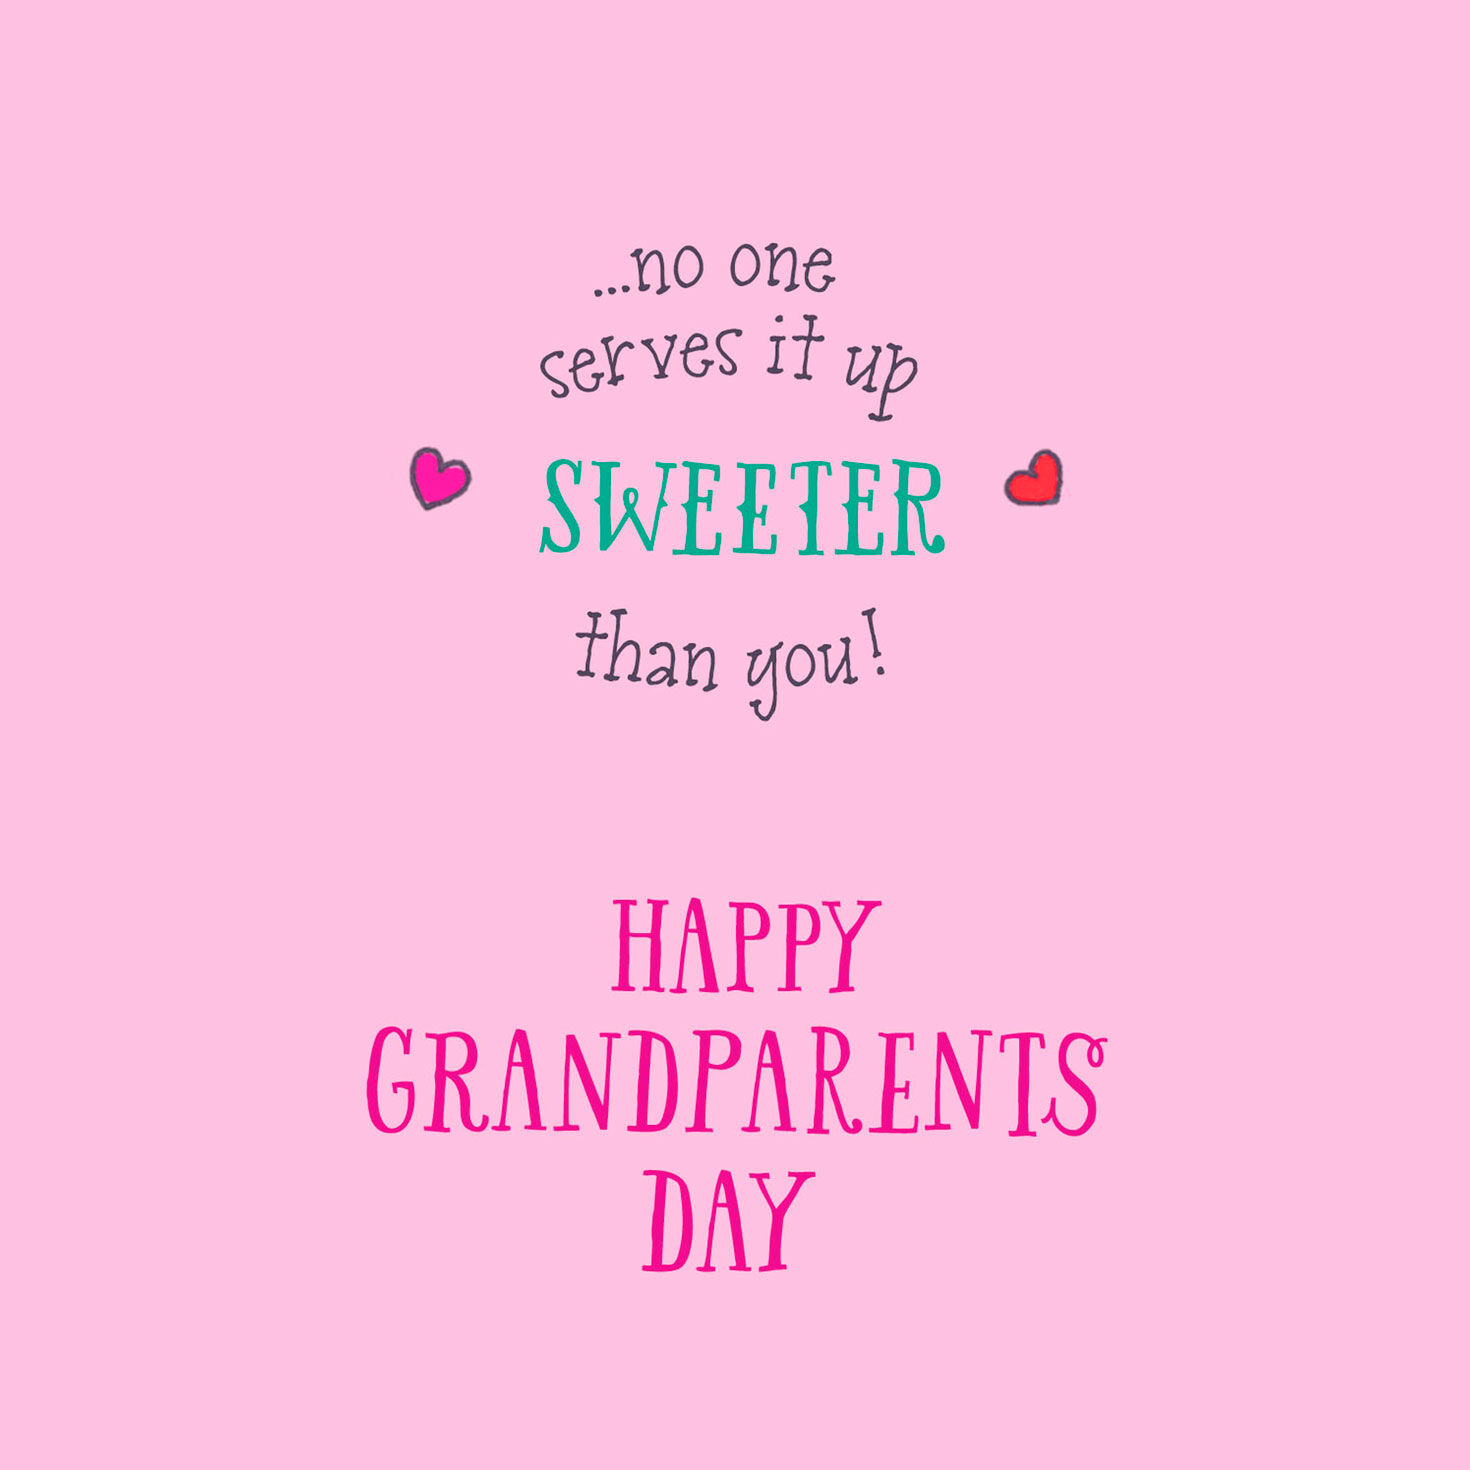 graphic about Grandparents Day Cards Printable known as Grandparents Working day Playing cards Hallmark